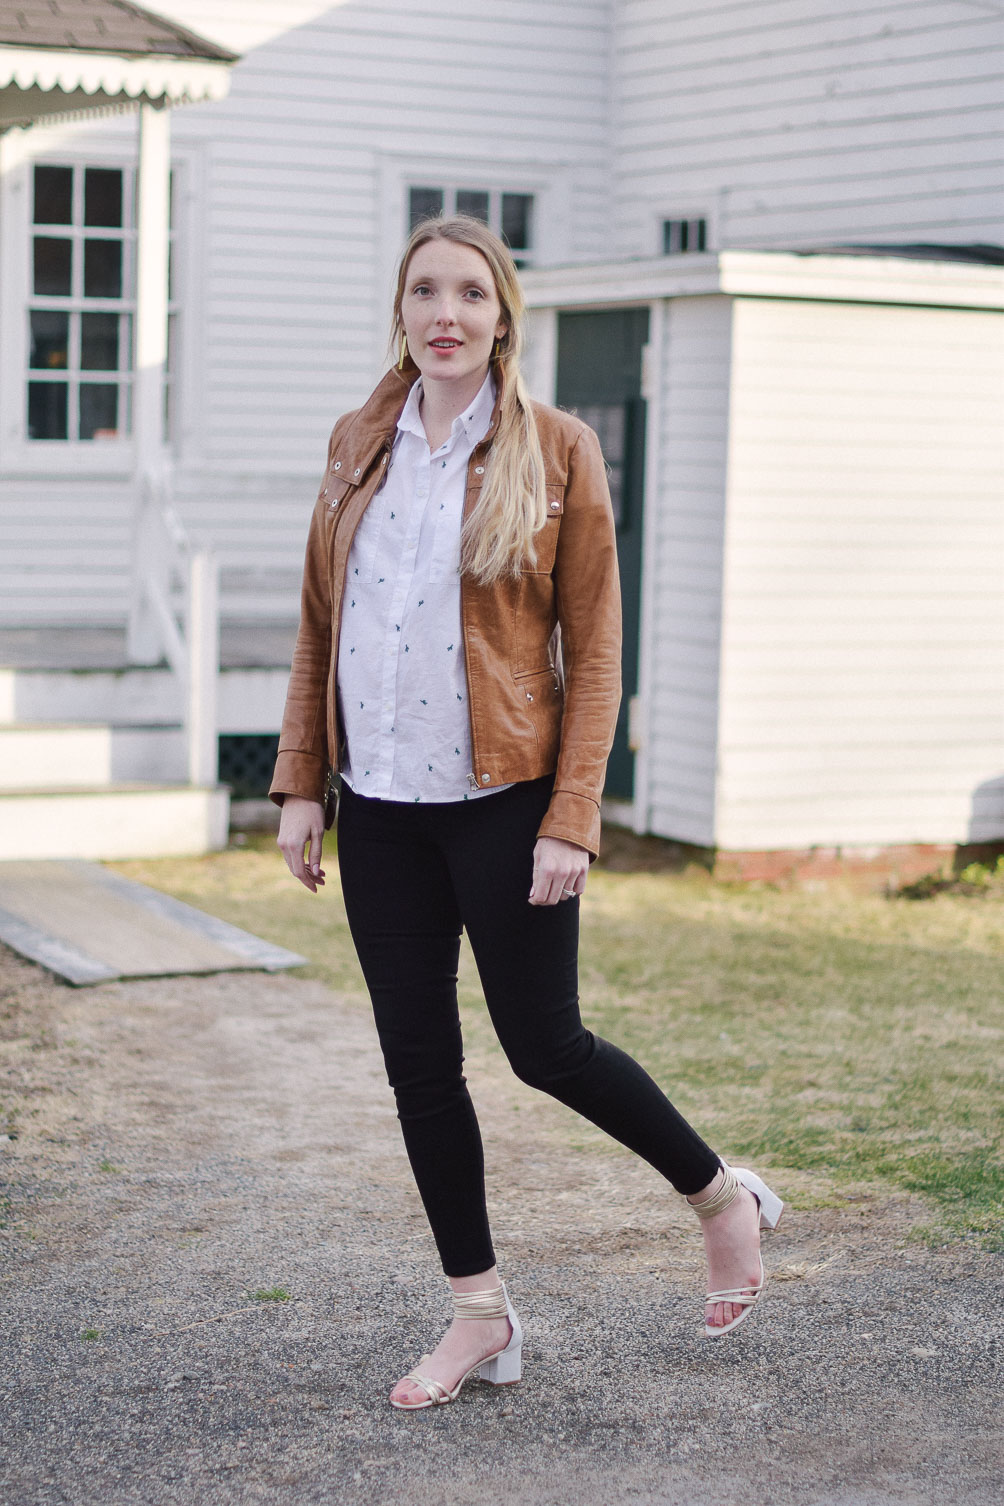 styling easy maternity outfit with cactus print top, skinny jeans, and tan leather jacket